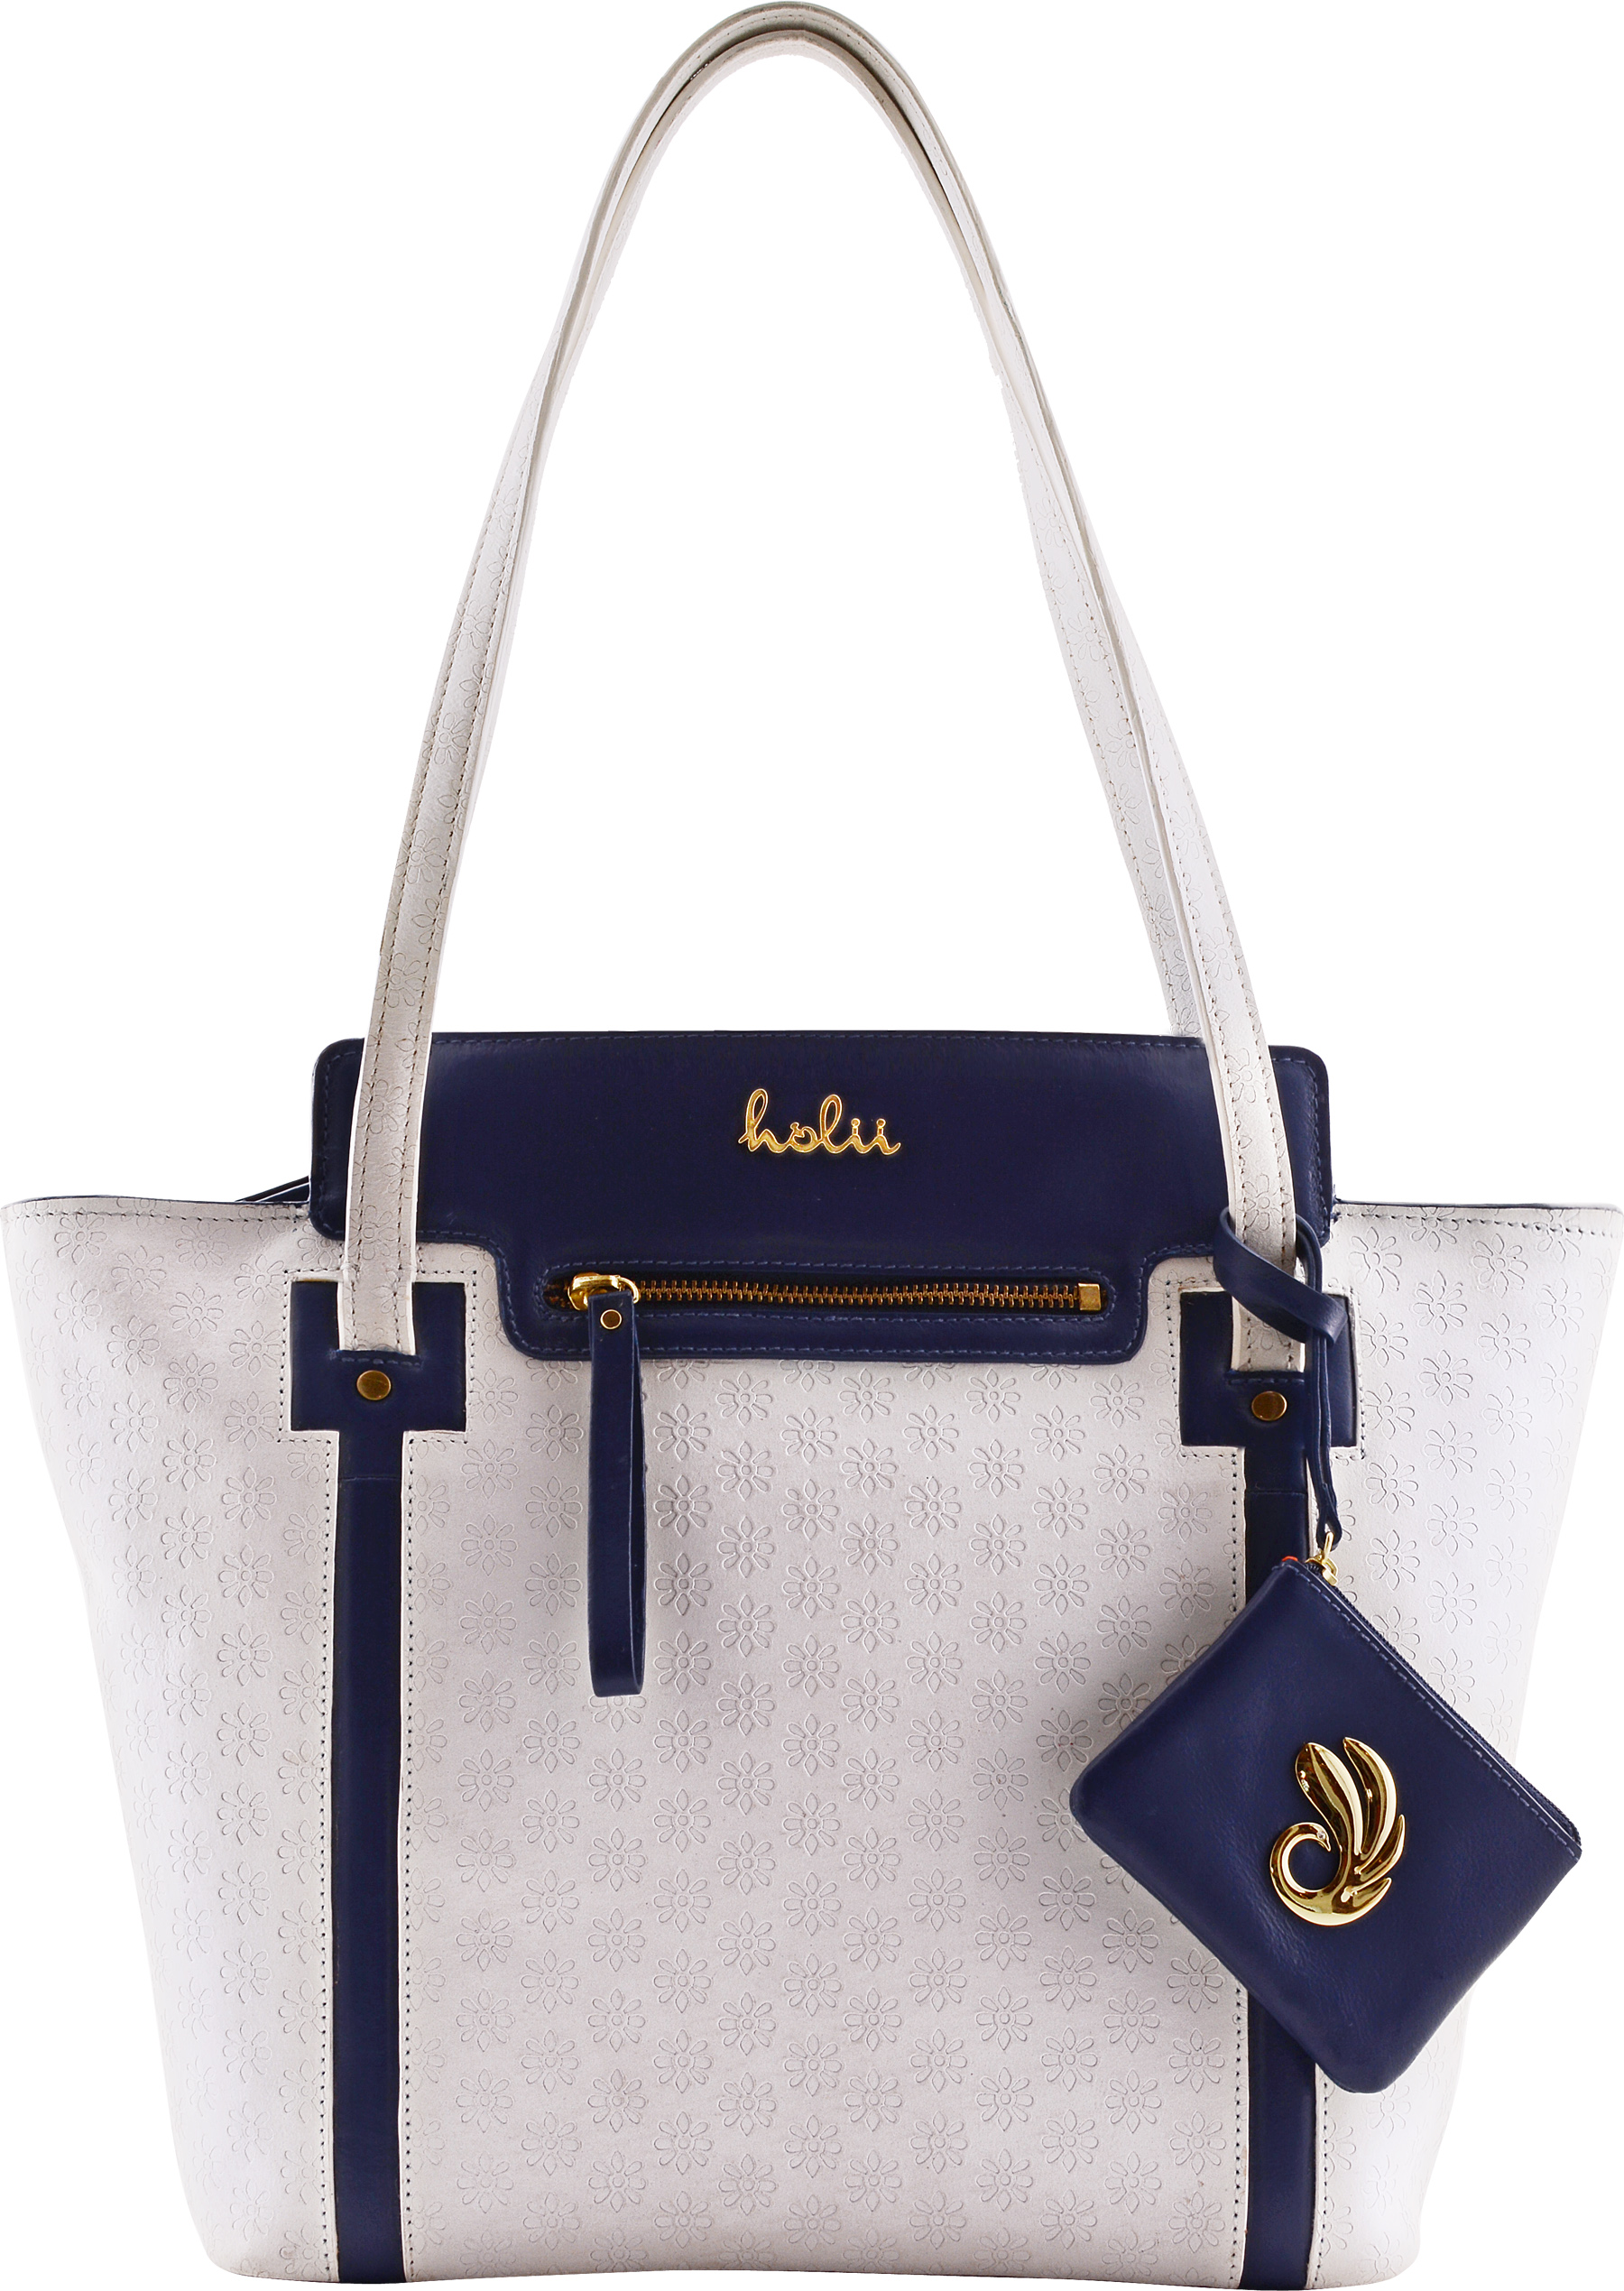 Kritika shoulder bag